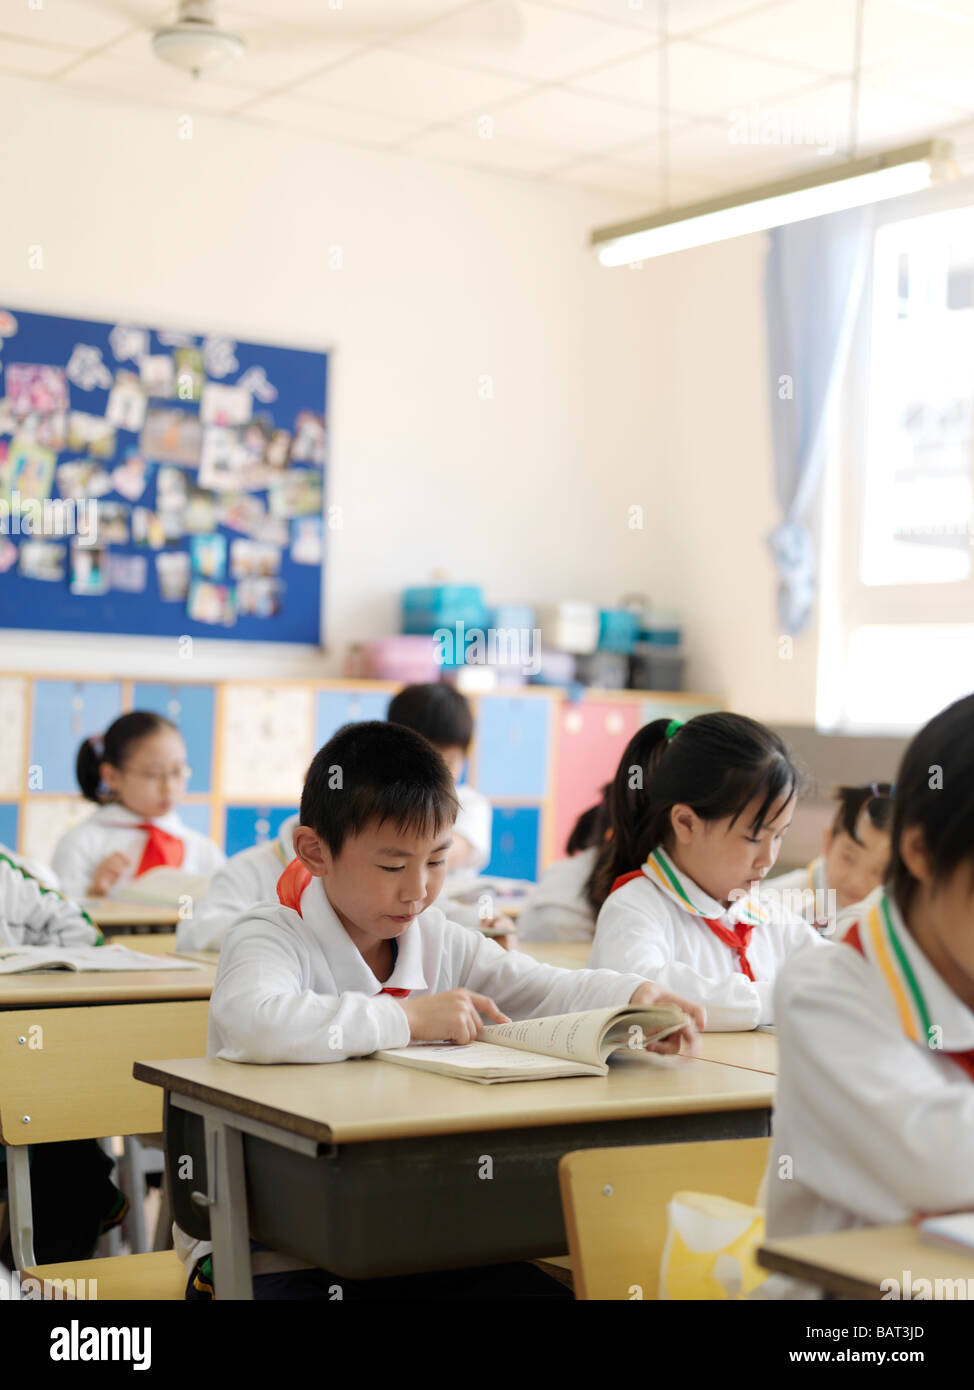 A classroom of young students reading a lesson from their textbook - Stock Image